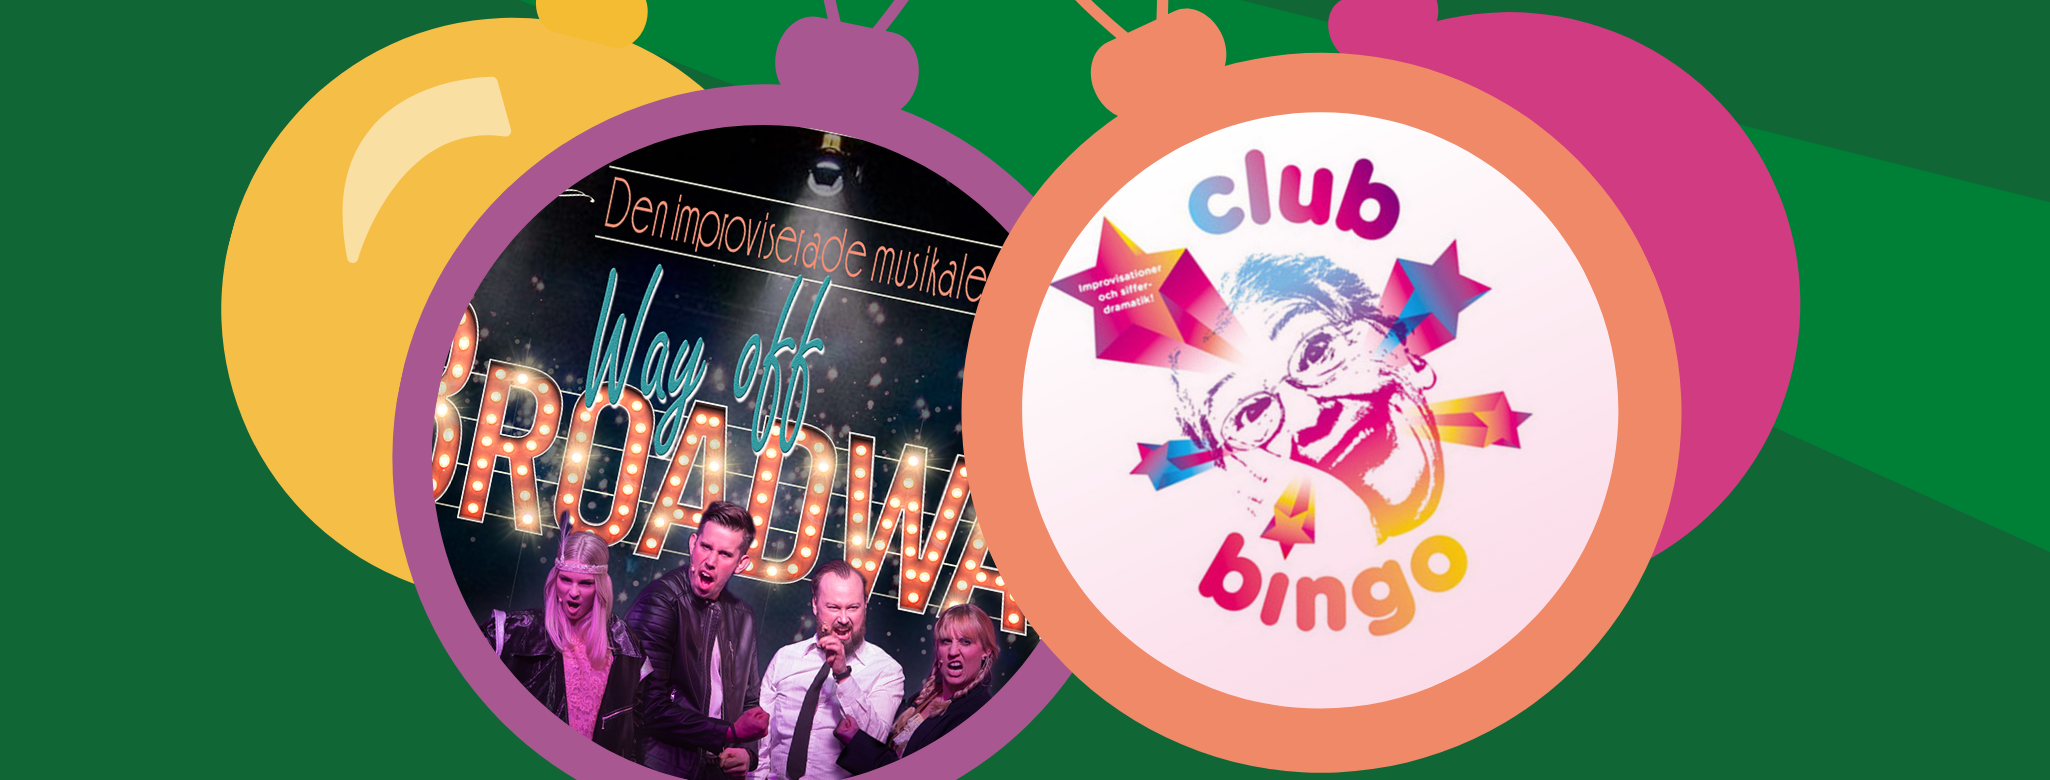 Club Bingo & Way off Broadway - Julspecial!